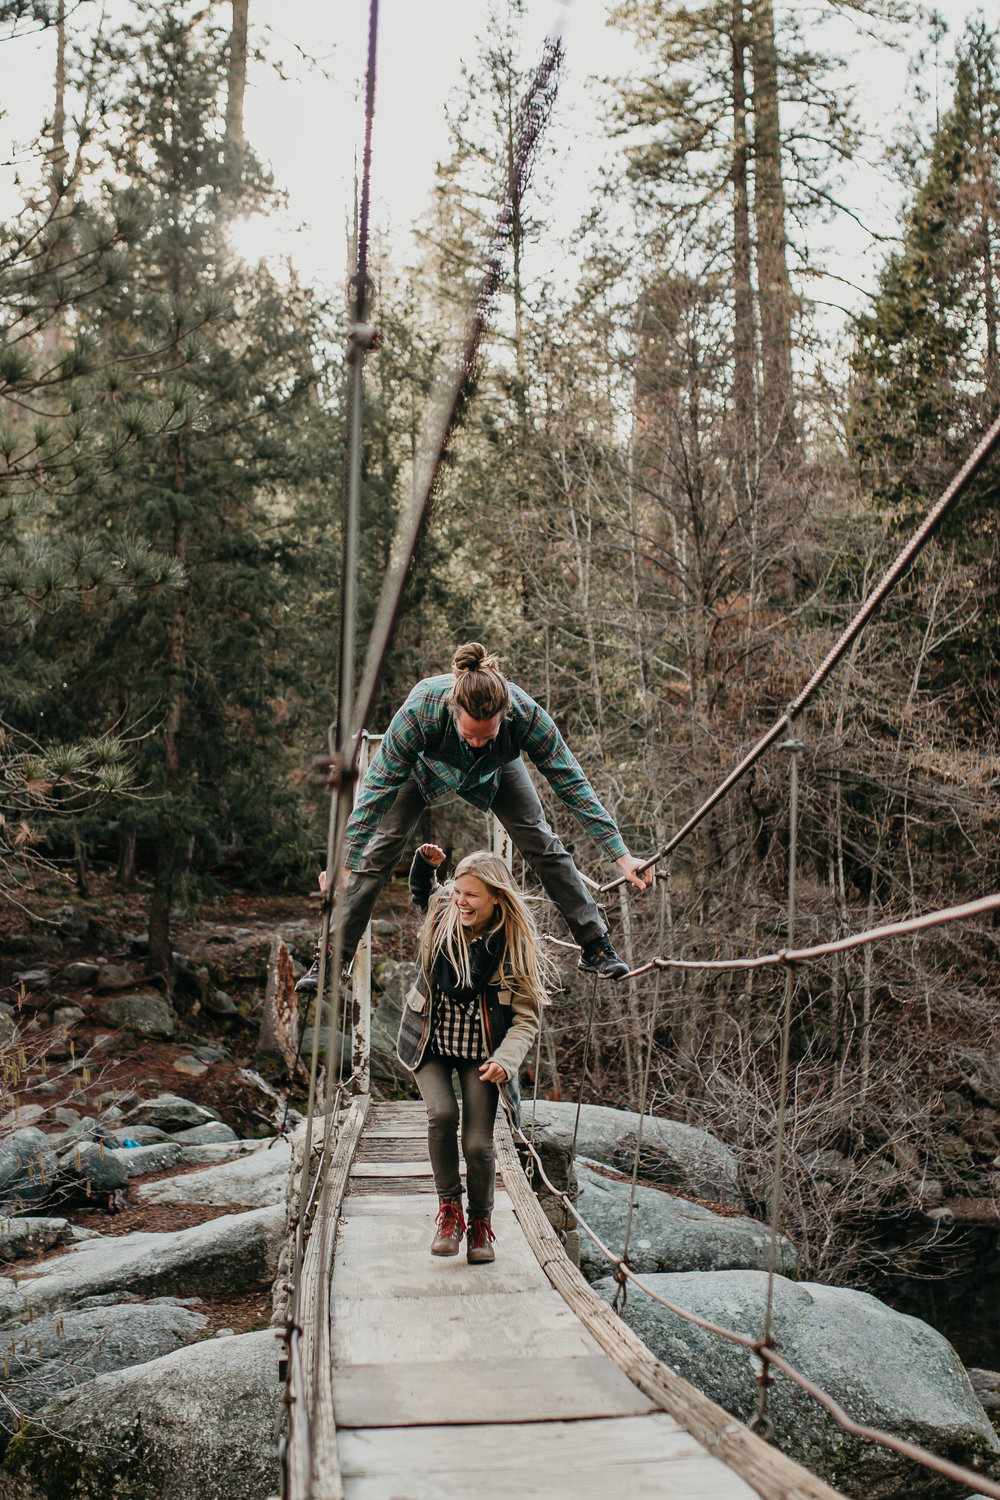 nicole-daacke-photography-yosemite-riverside-adventurous-engagement-photos-in-yosemite-national-park-elopement-photographer-weddings-travel-destination-wedding-eloping-elope-pine-forest-33.jpg